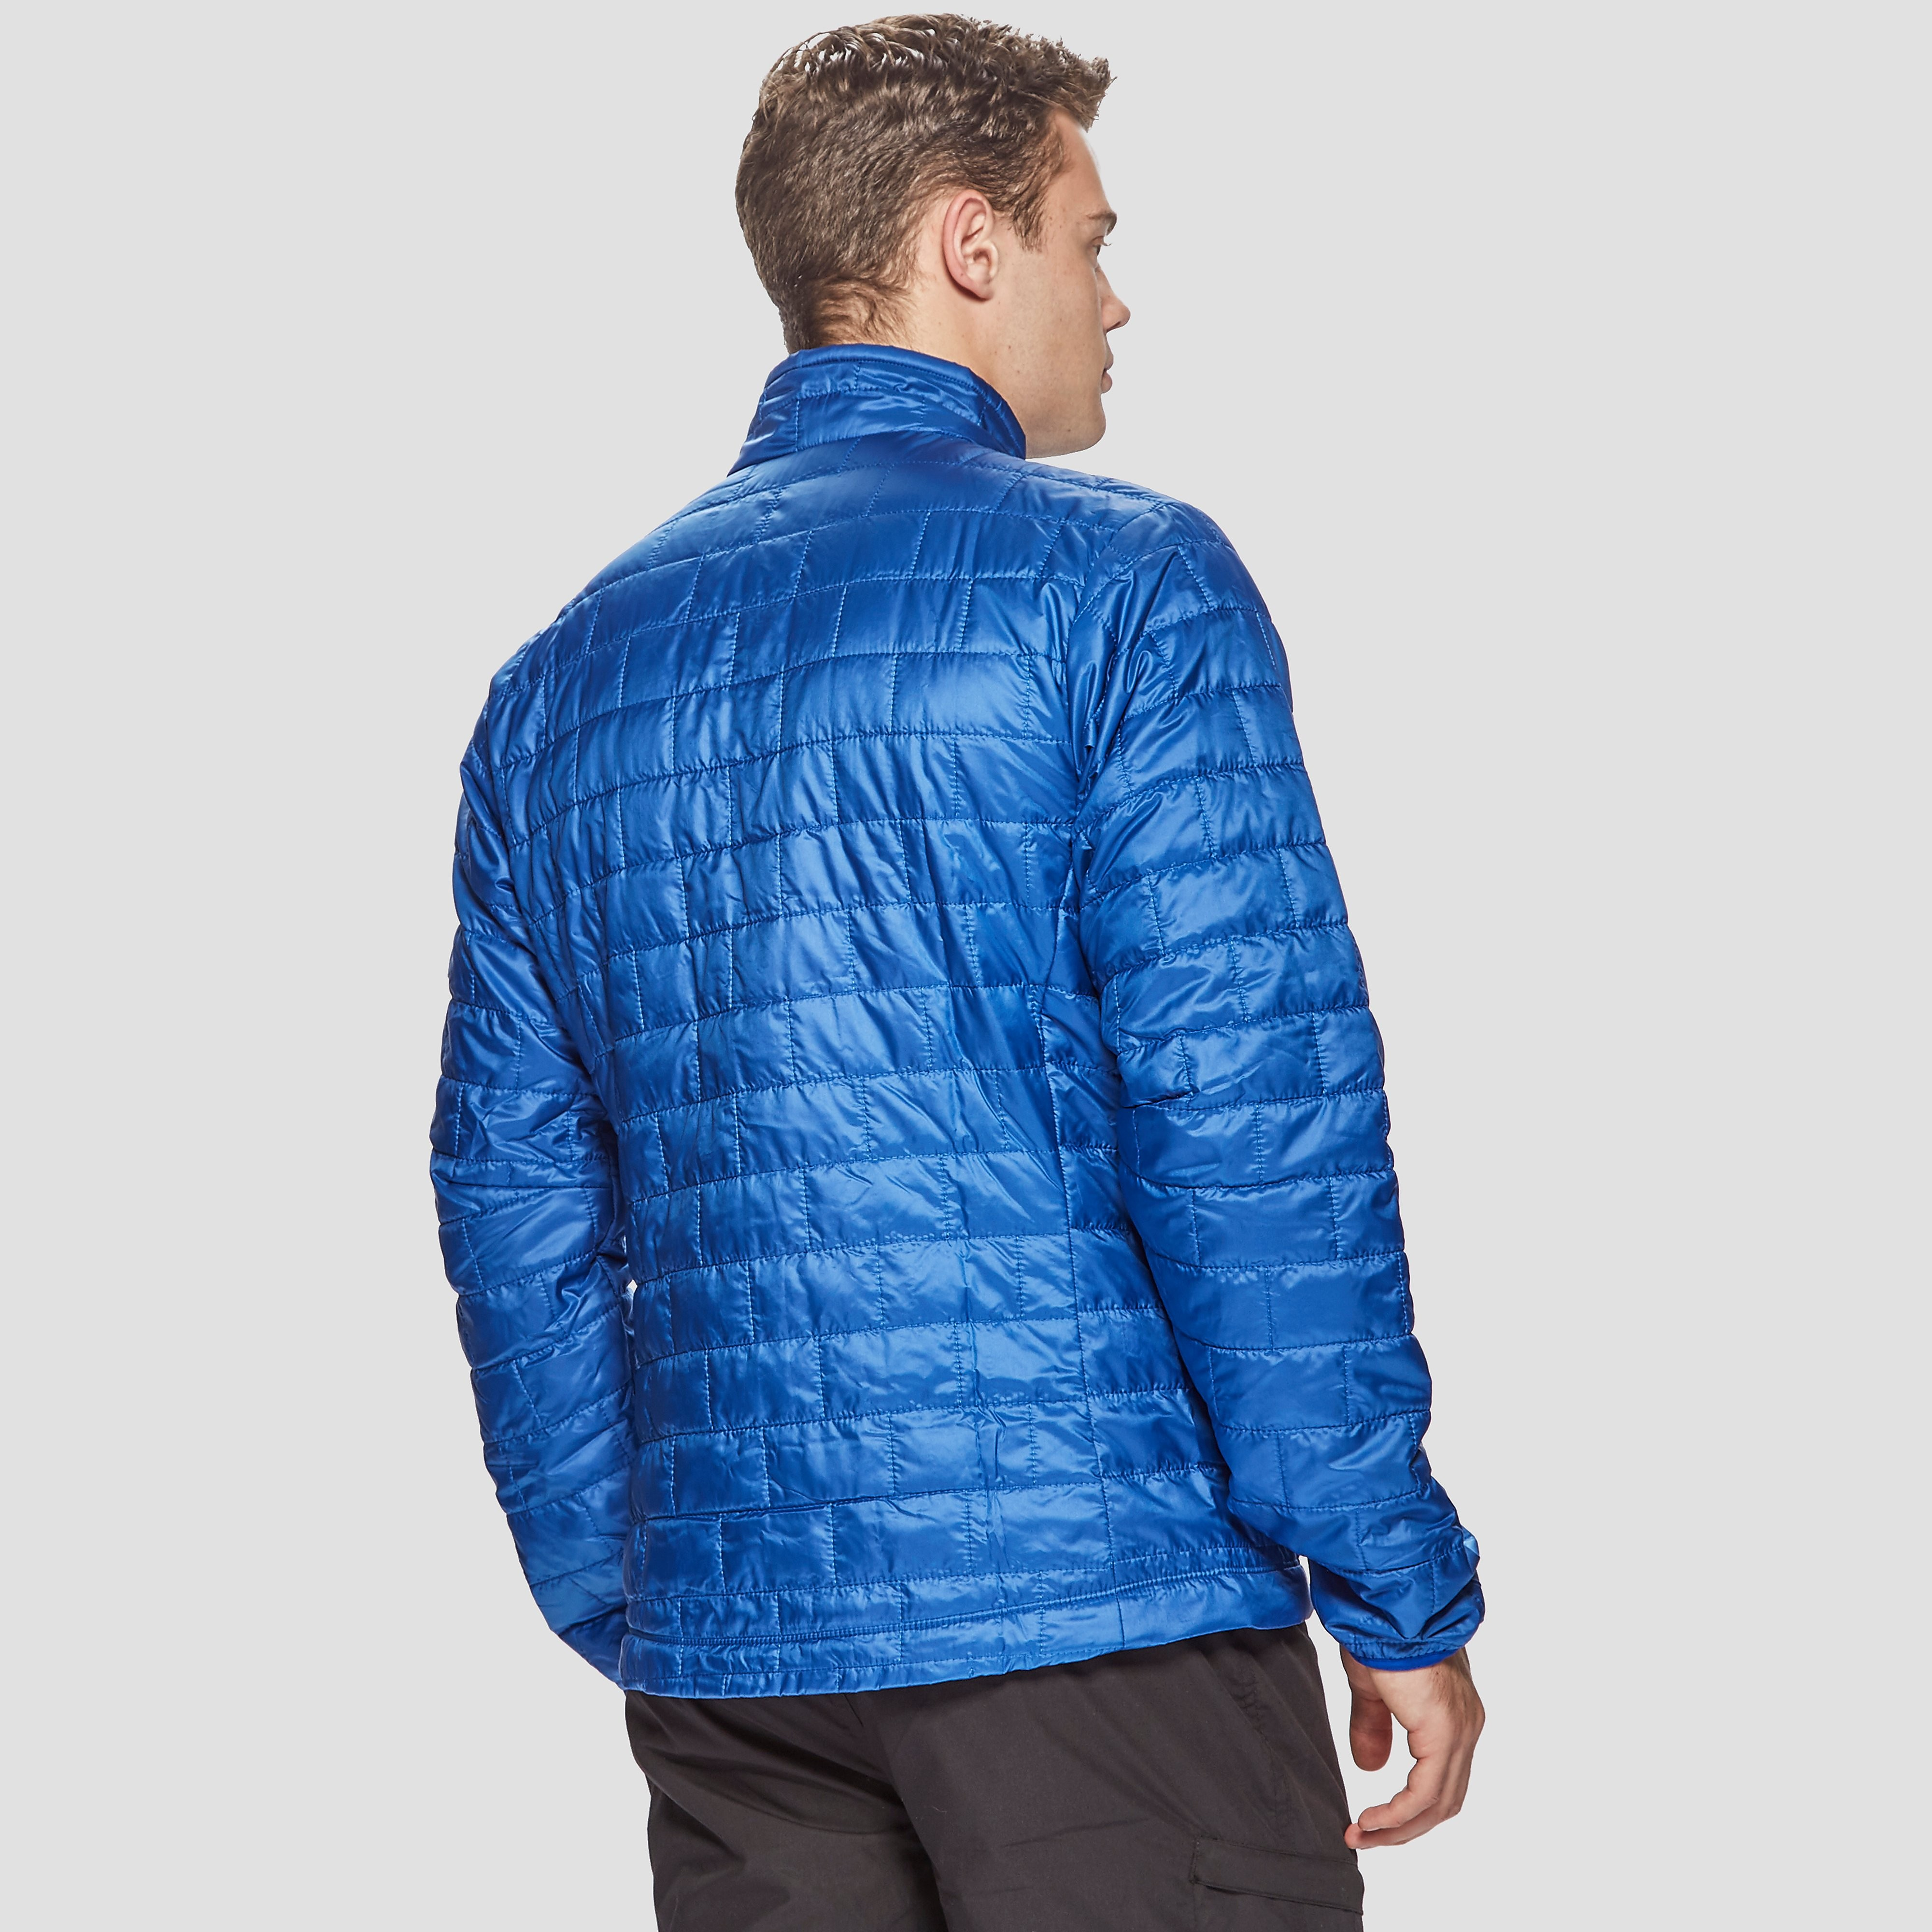 Patagonia NANO PUFF MEN'S JACKET